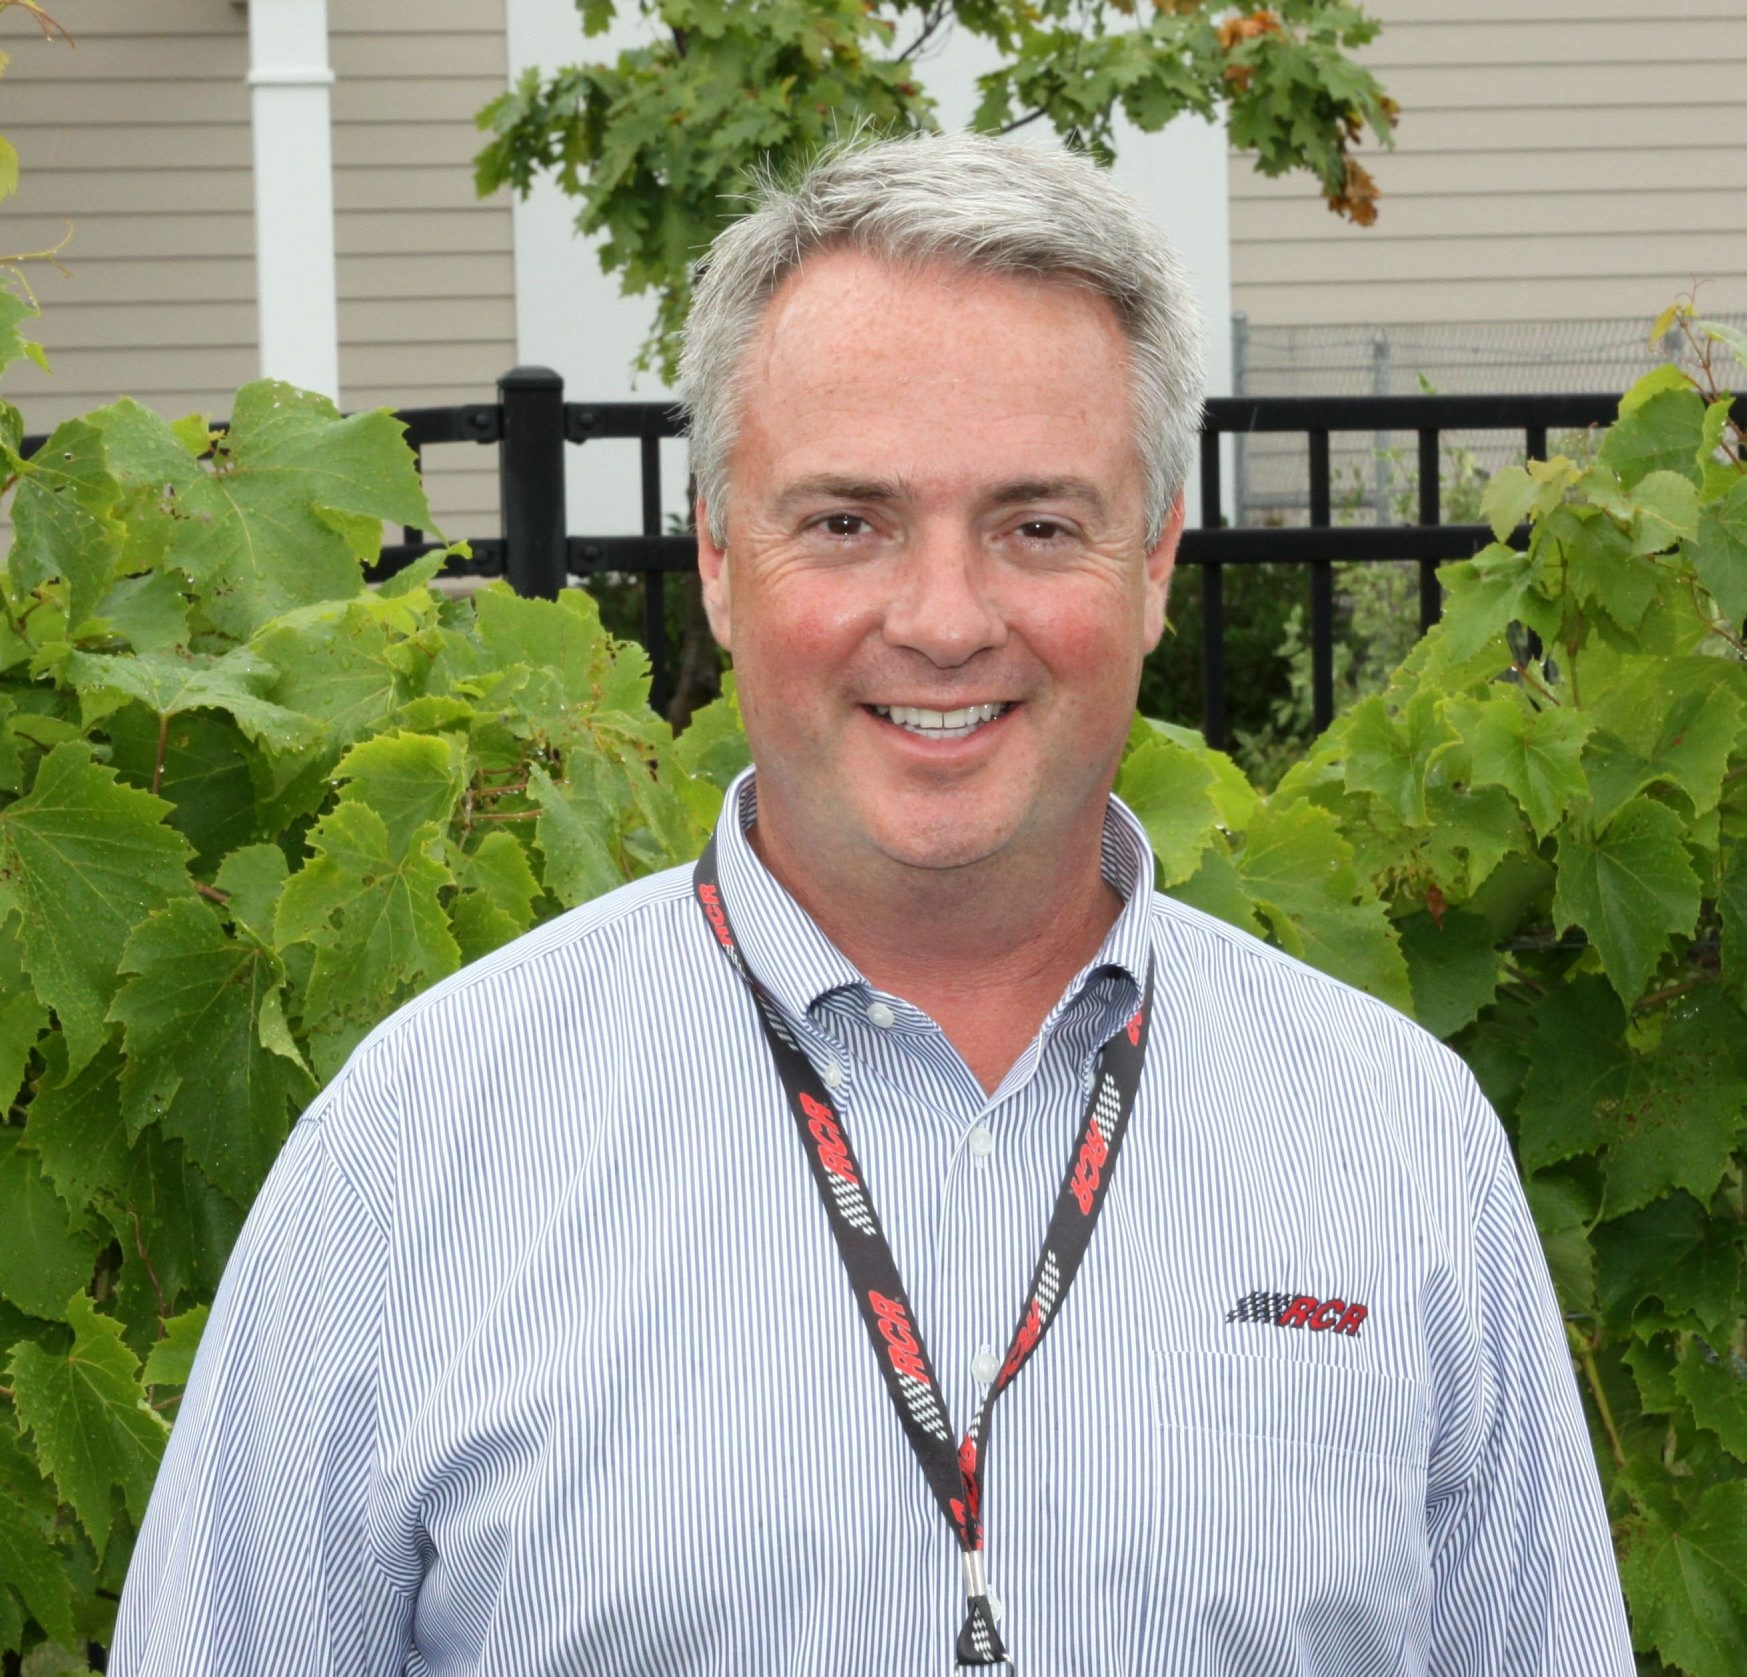 Tim Packman is moving up the NASCAR ladder. He currently works for Richard Childress Racing.